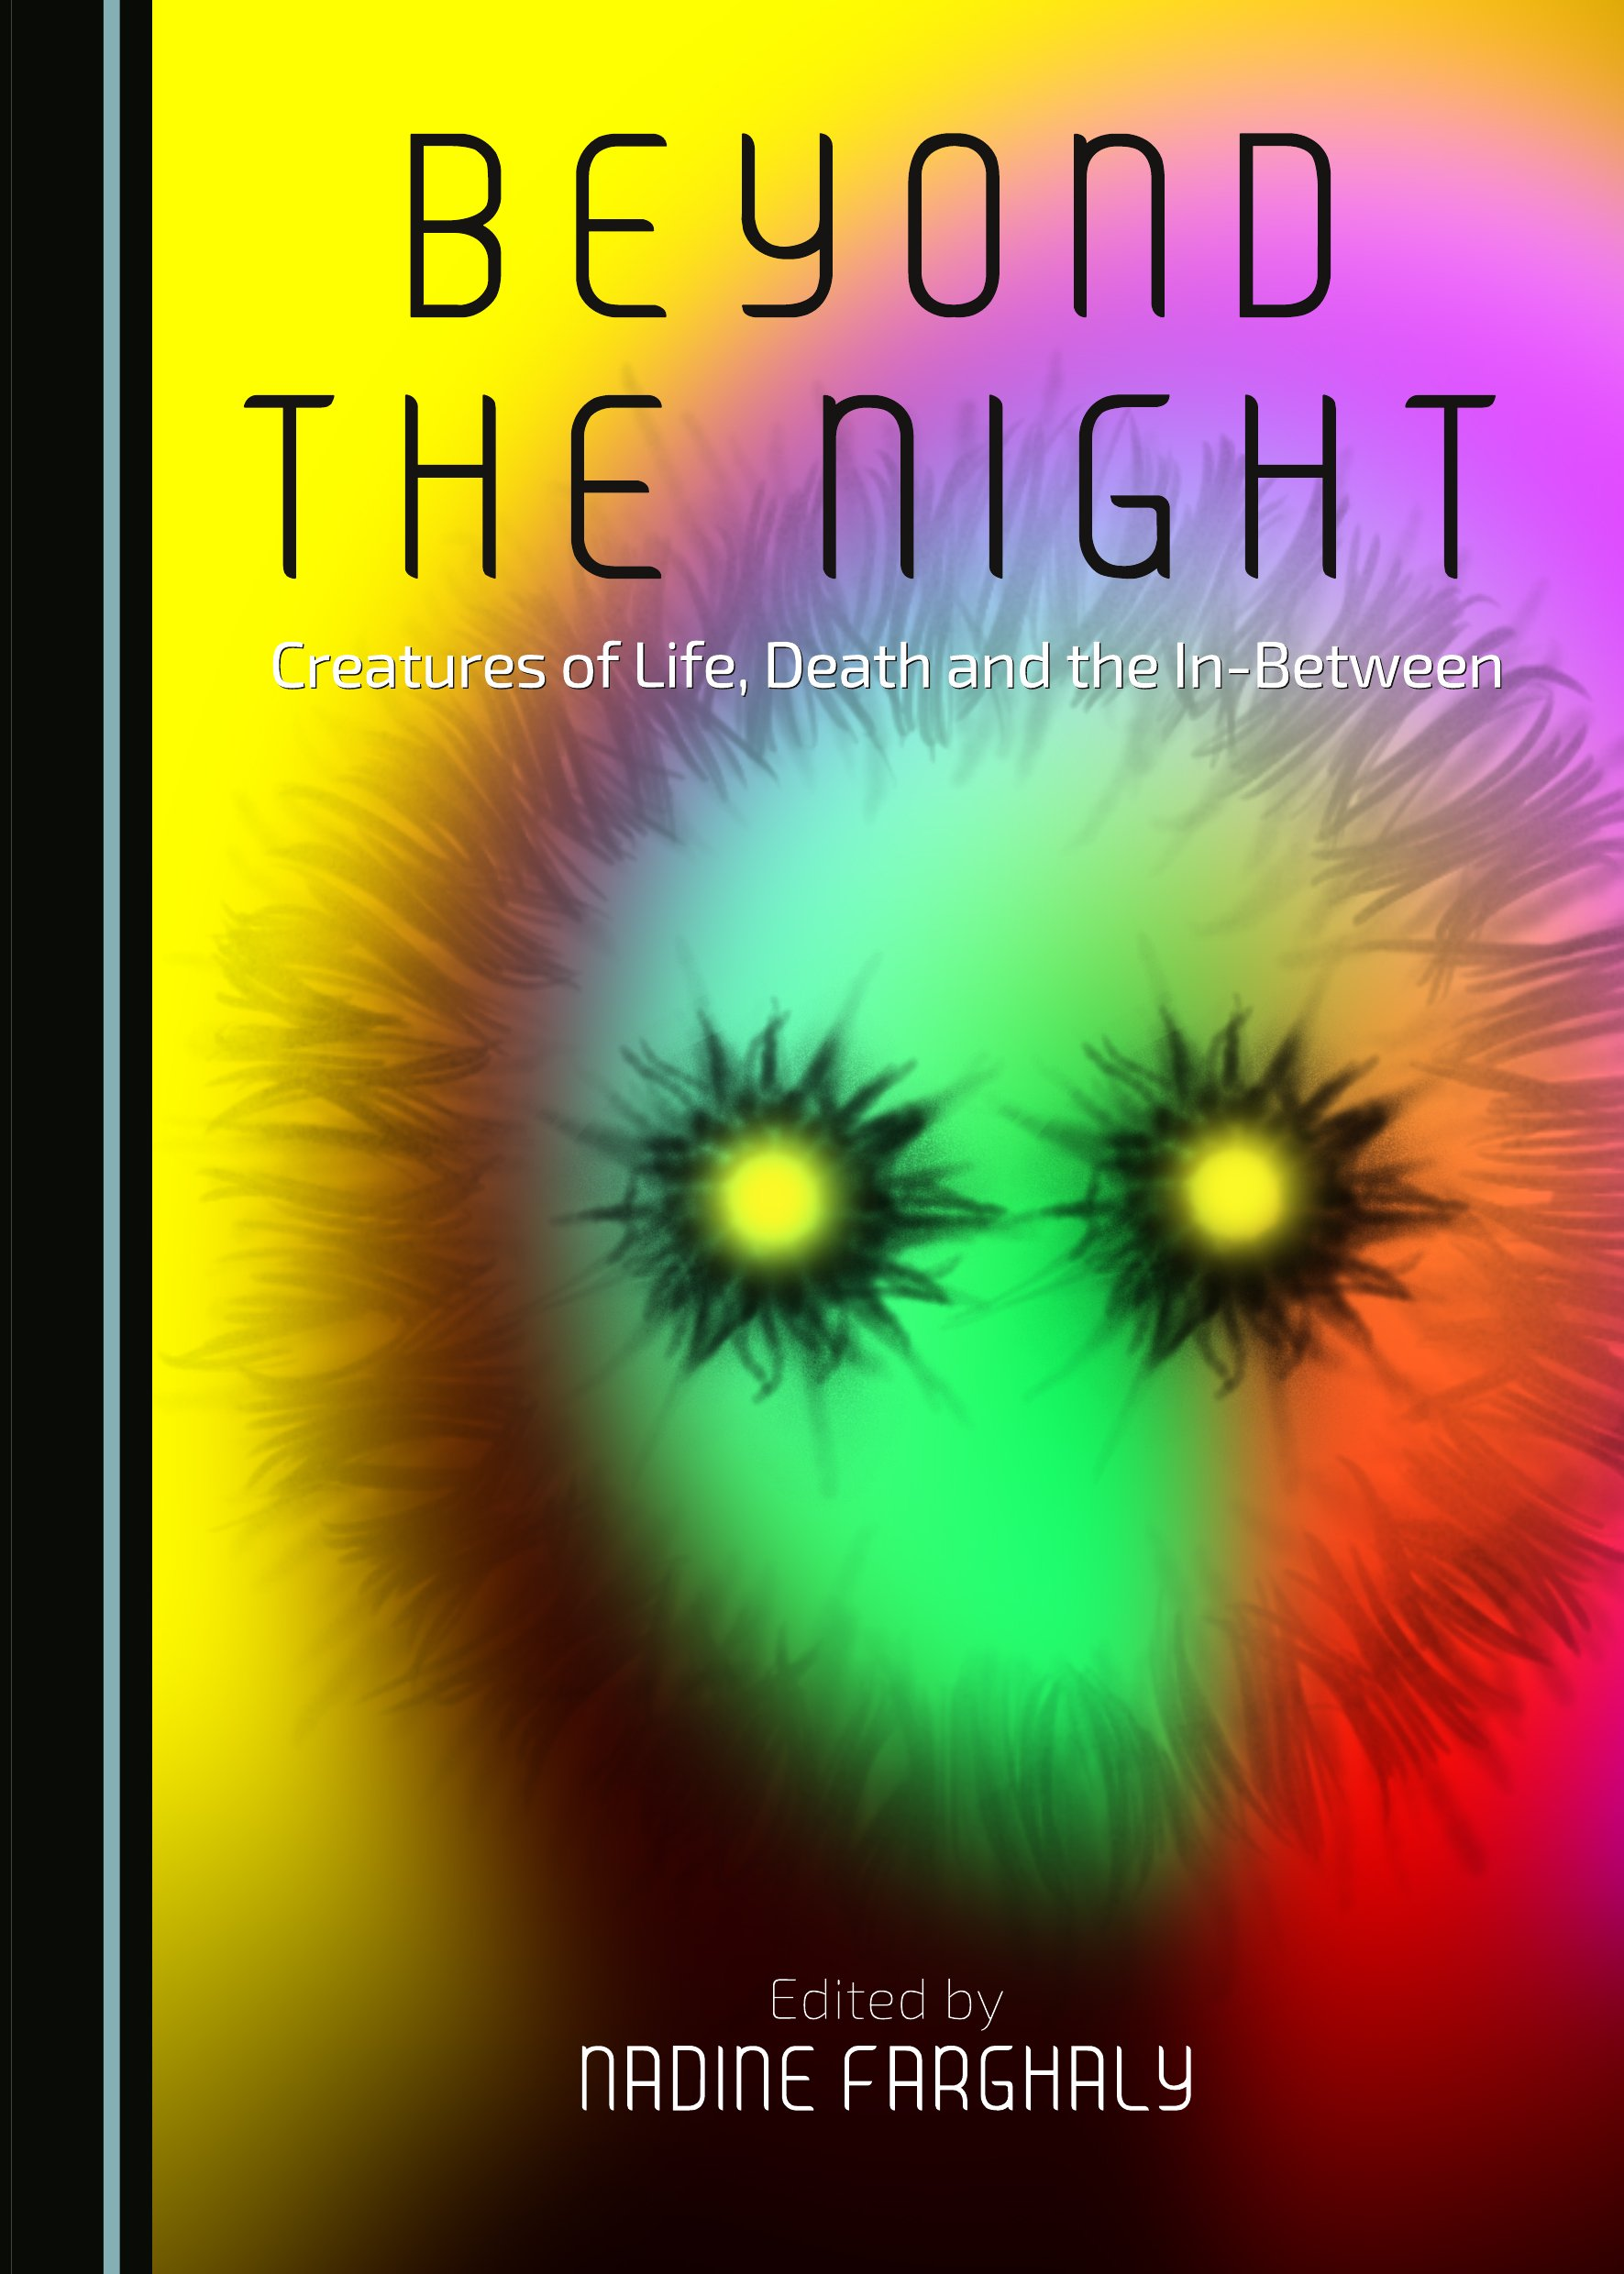 Beyond the Night: Creatures of Life, Death and the In-Between